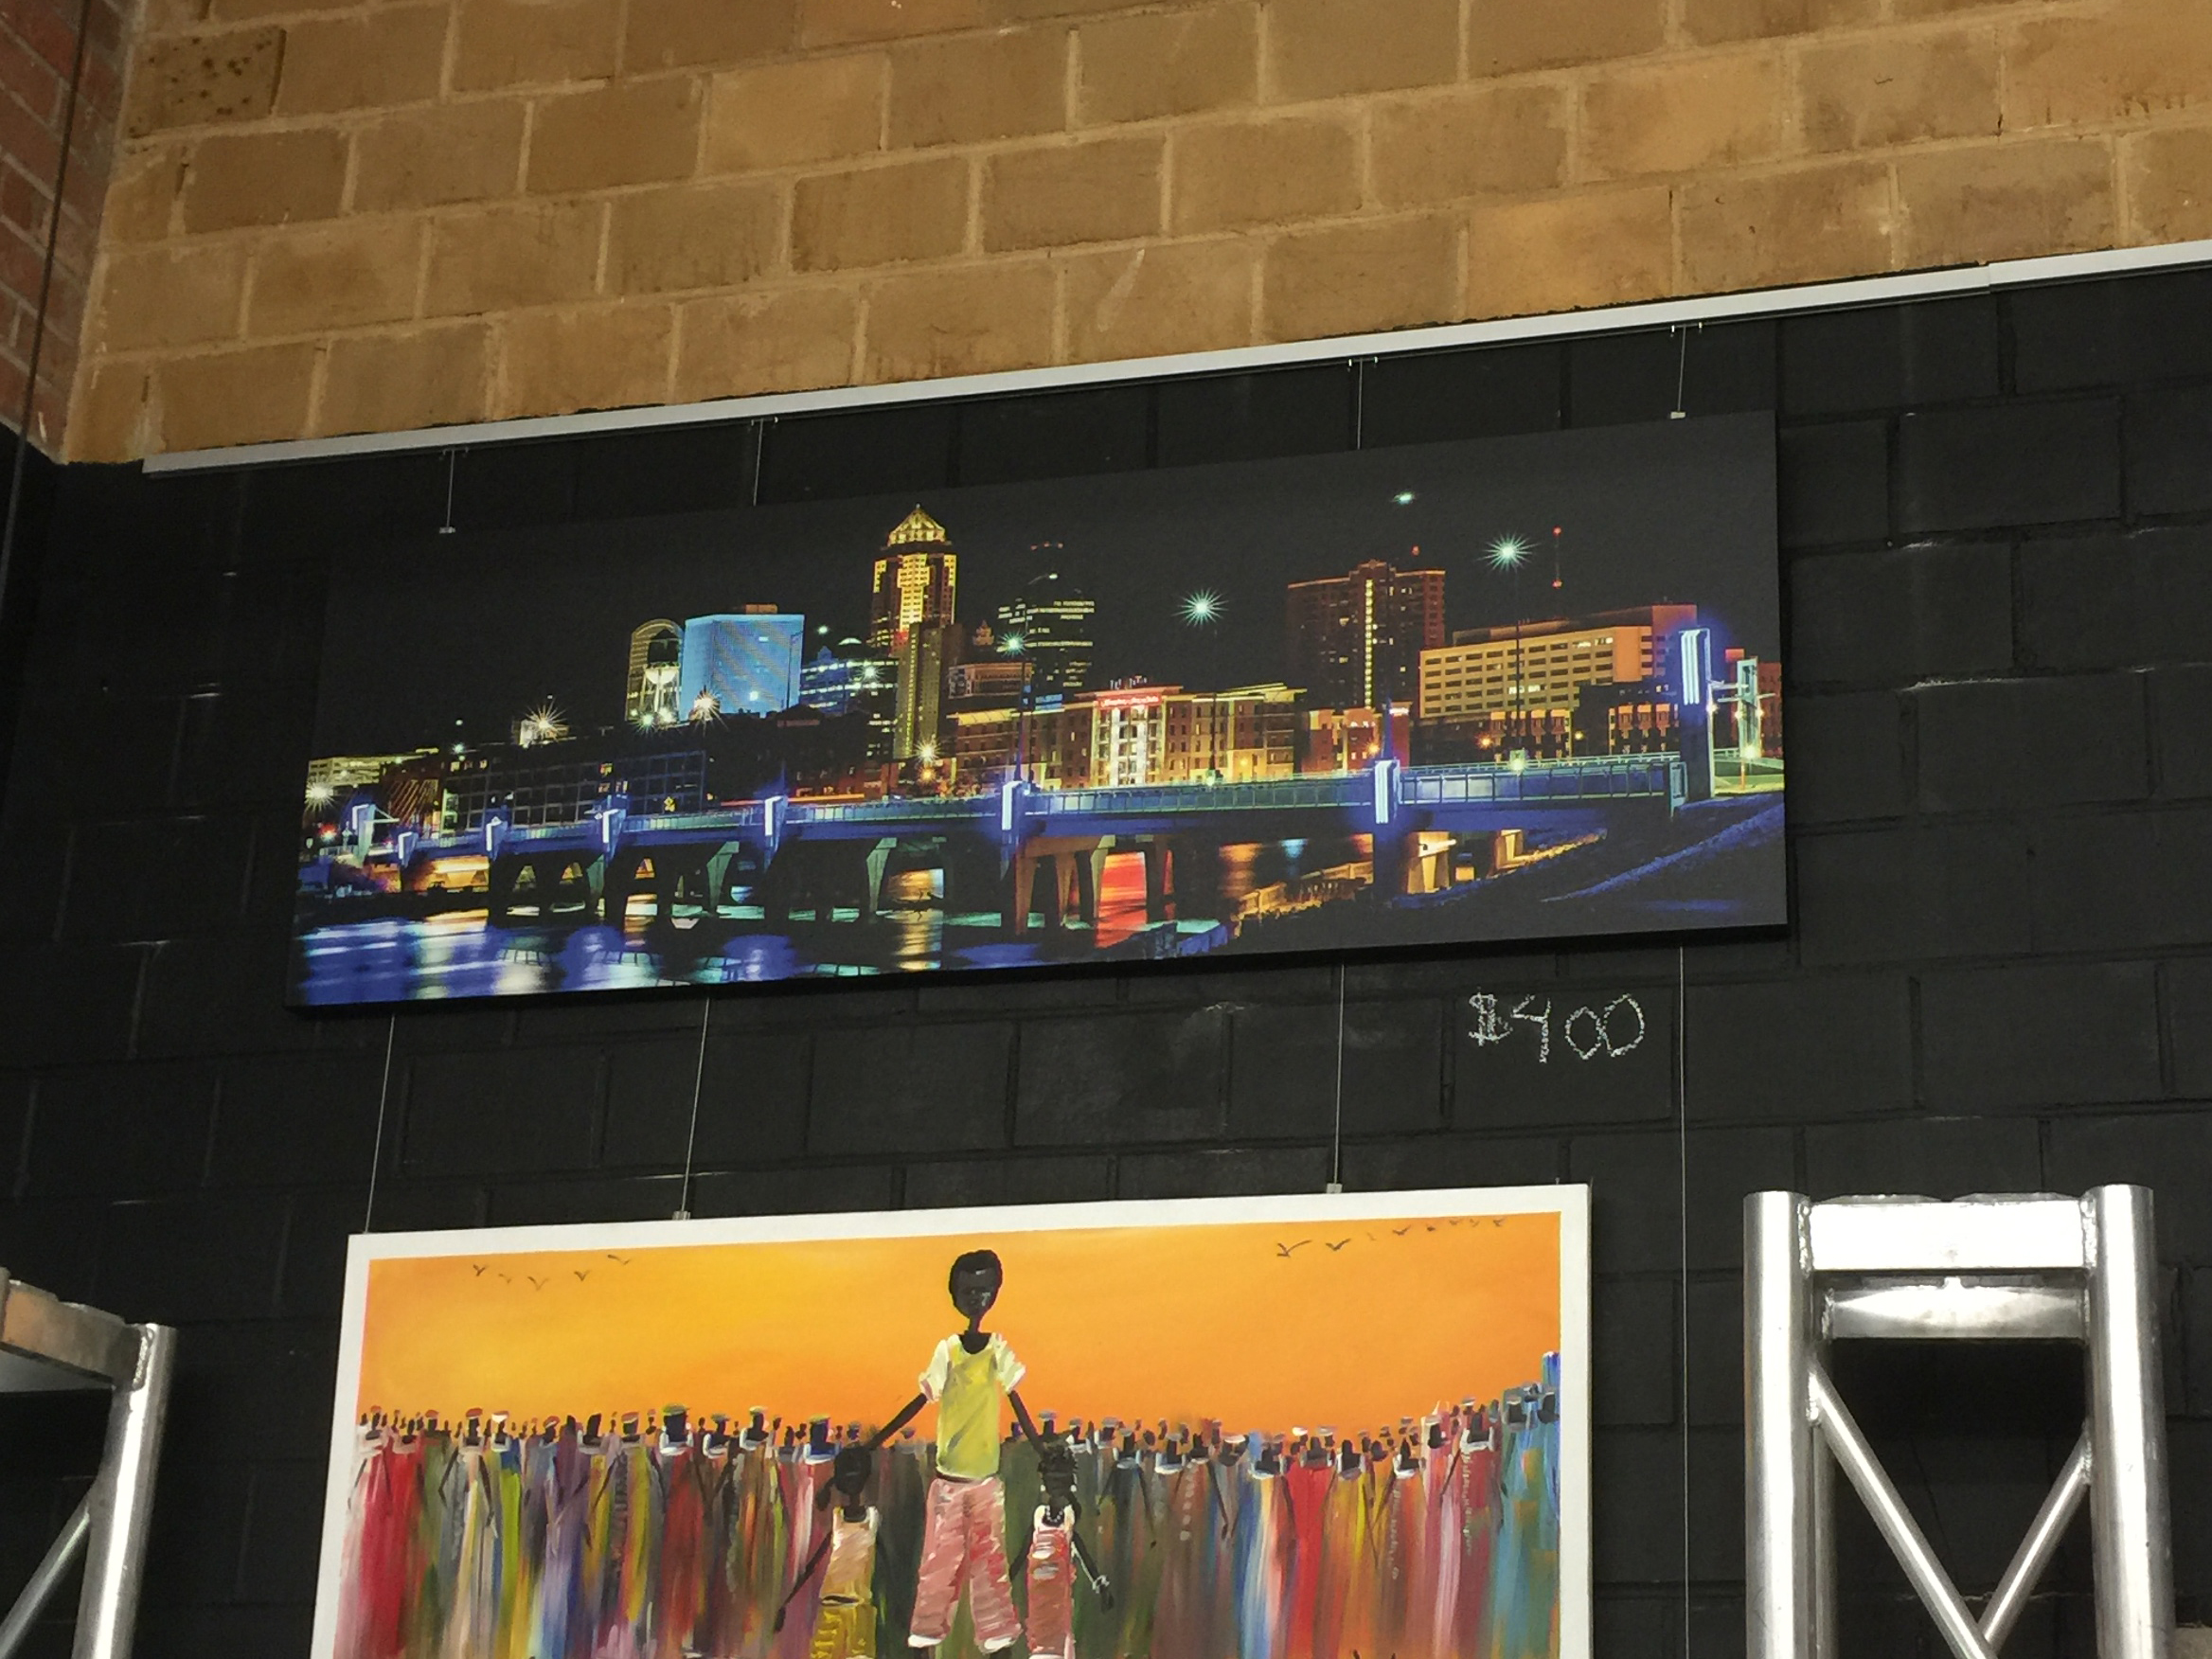 Select Rogers Photography prints on sale at the Viaduct Gallery inside the Des Moines Social Club